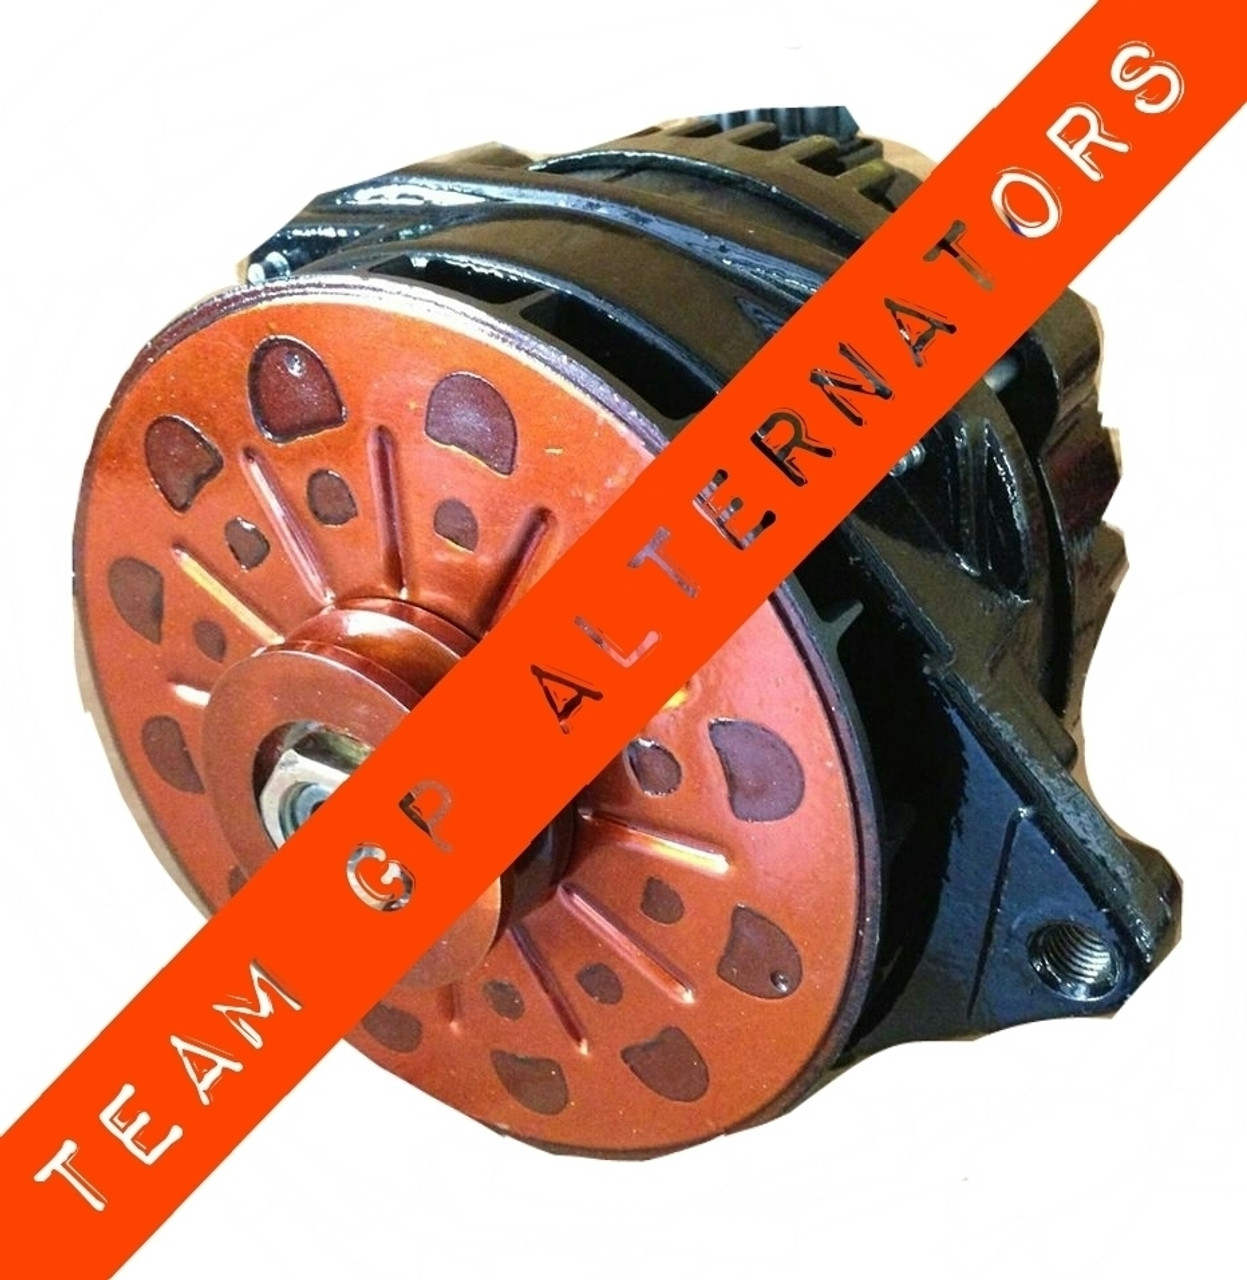 MAZDA MADZA 3 2.0 -2006-2011- 200AMP TEAM GP Alternator